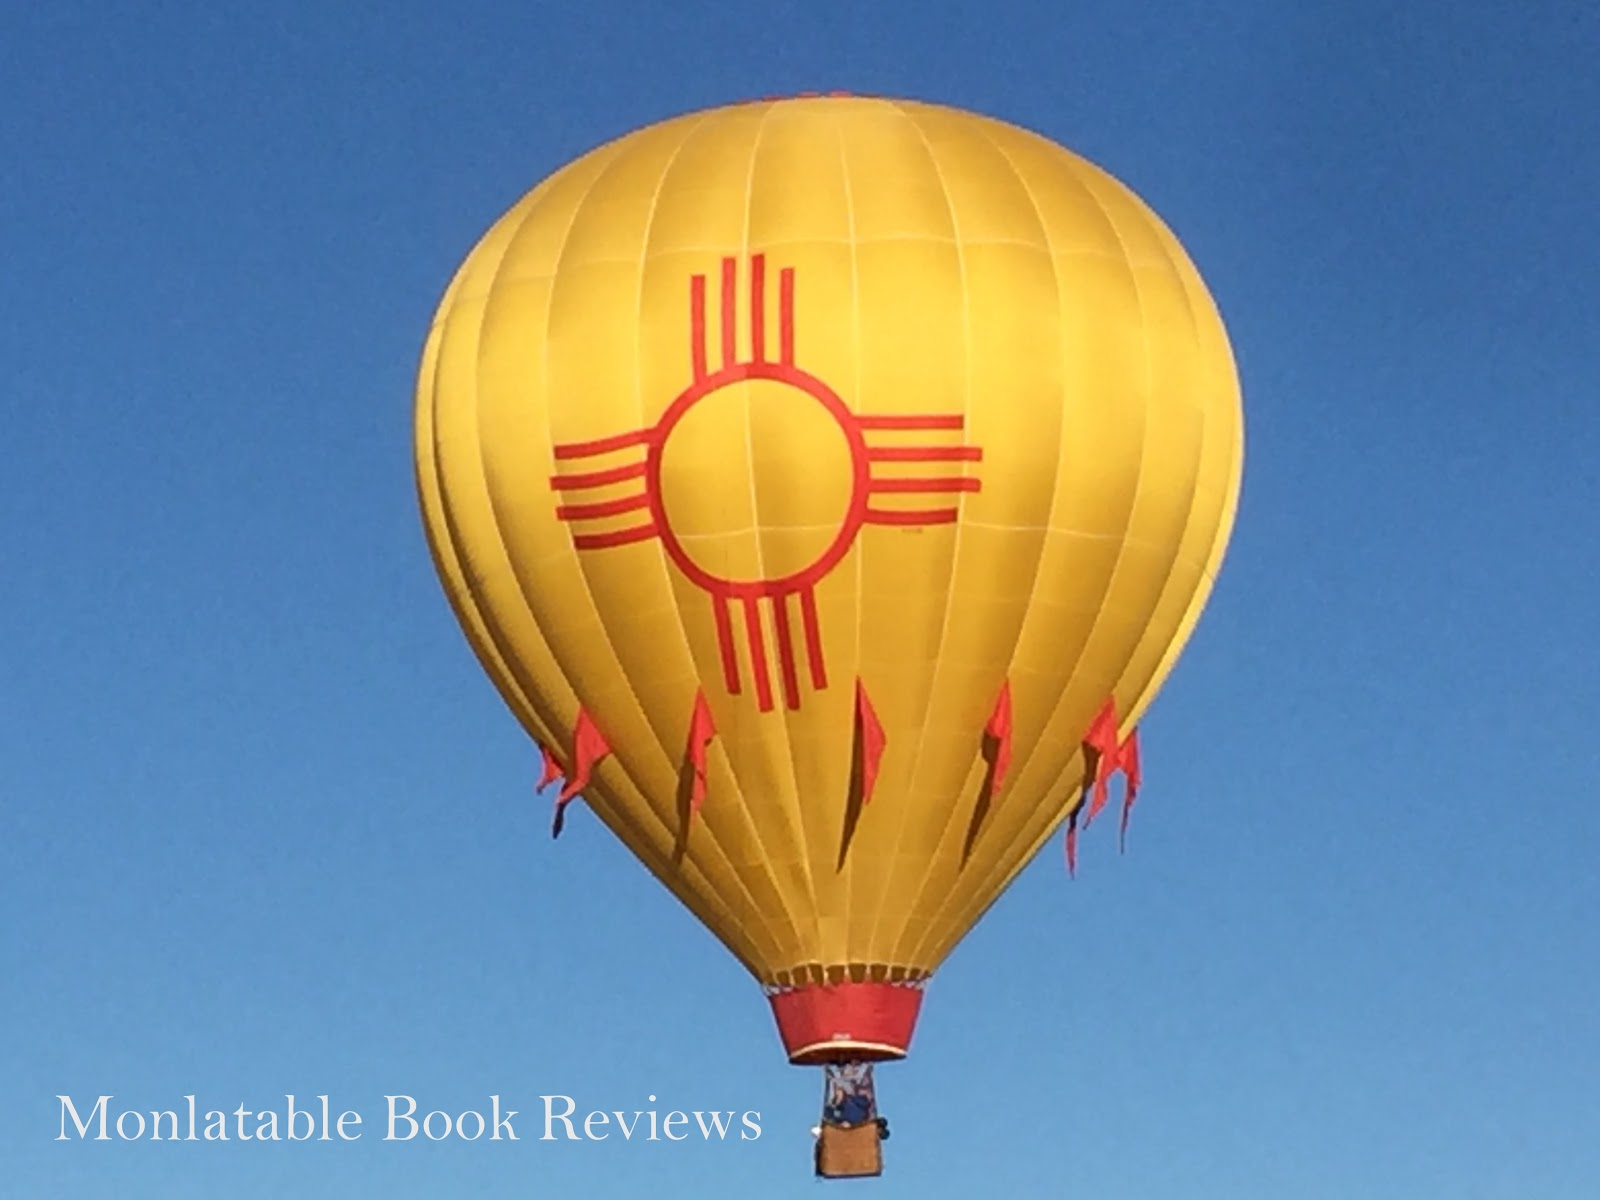 Monlatable Book Reviews Albuquerque International Balloon Fiesta 2017